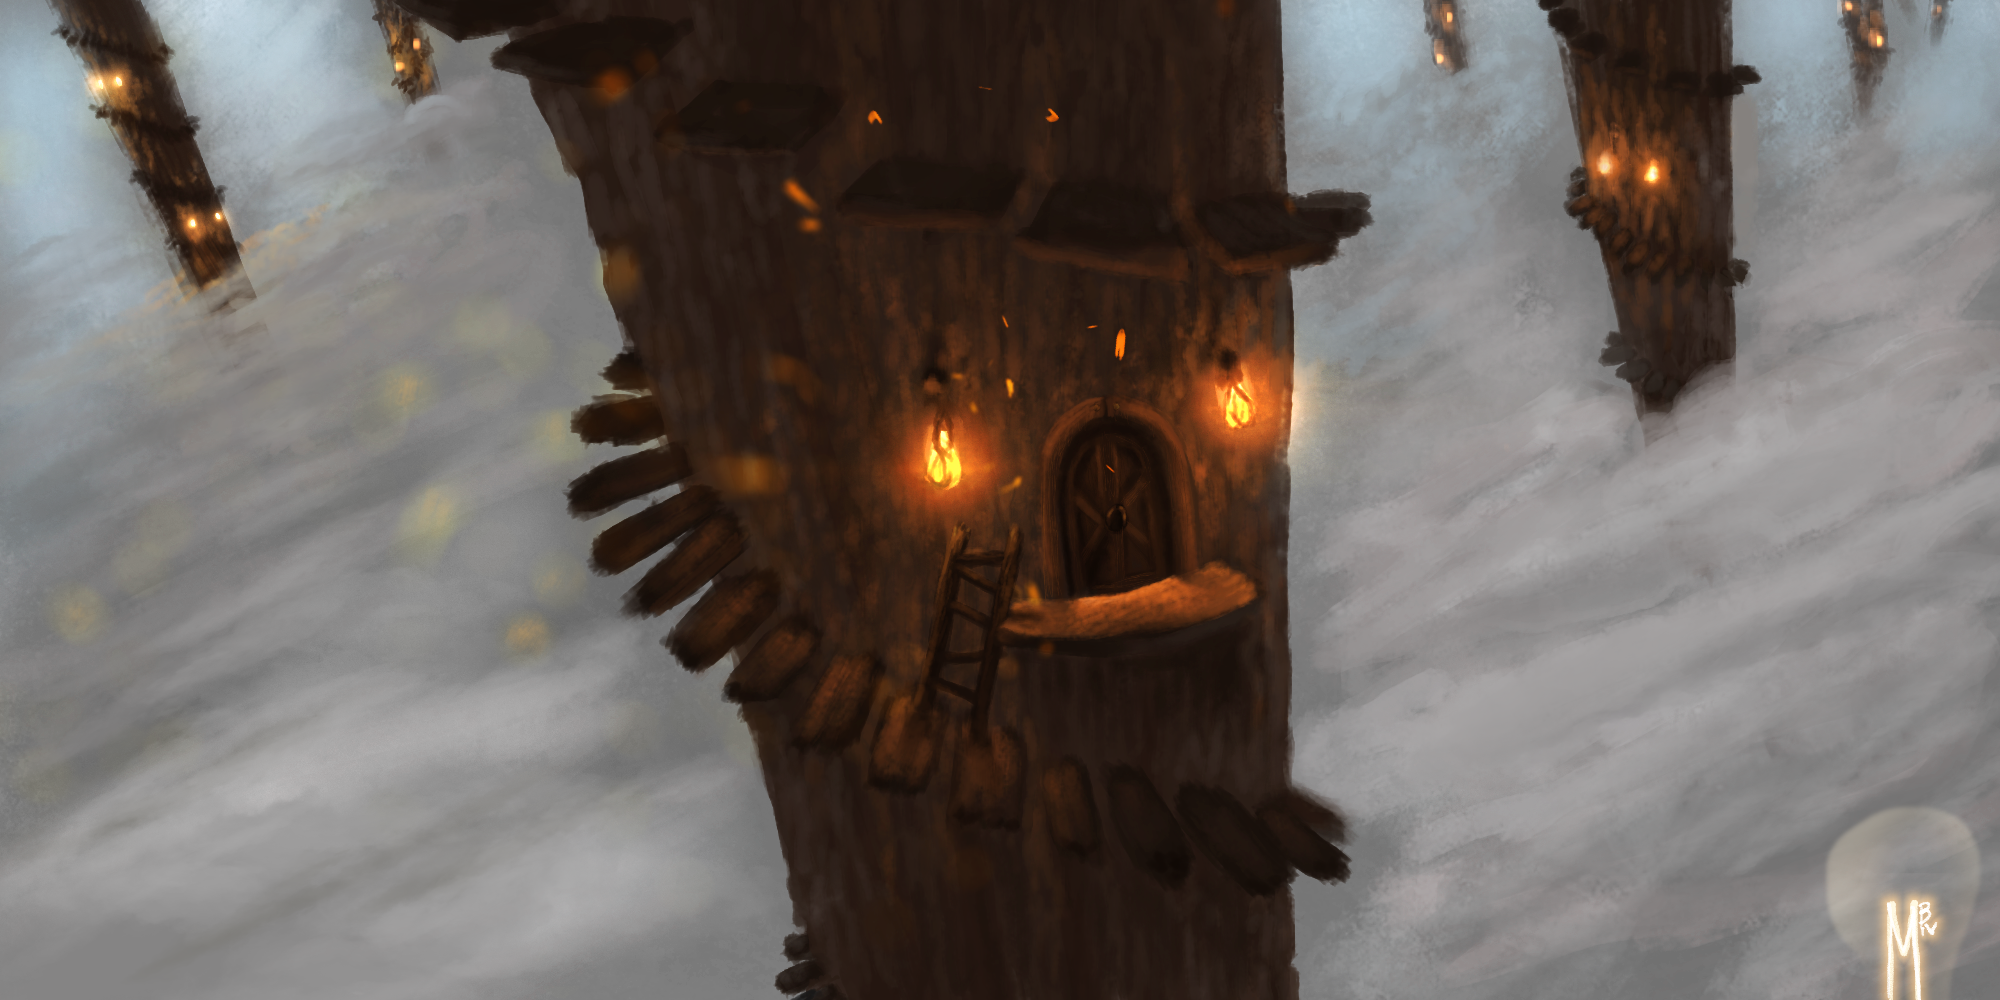 Lofty Treehouses Concept